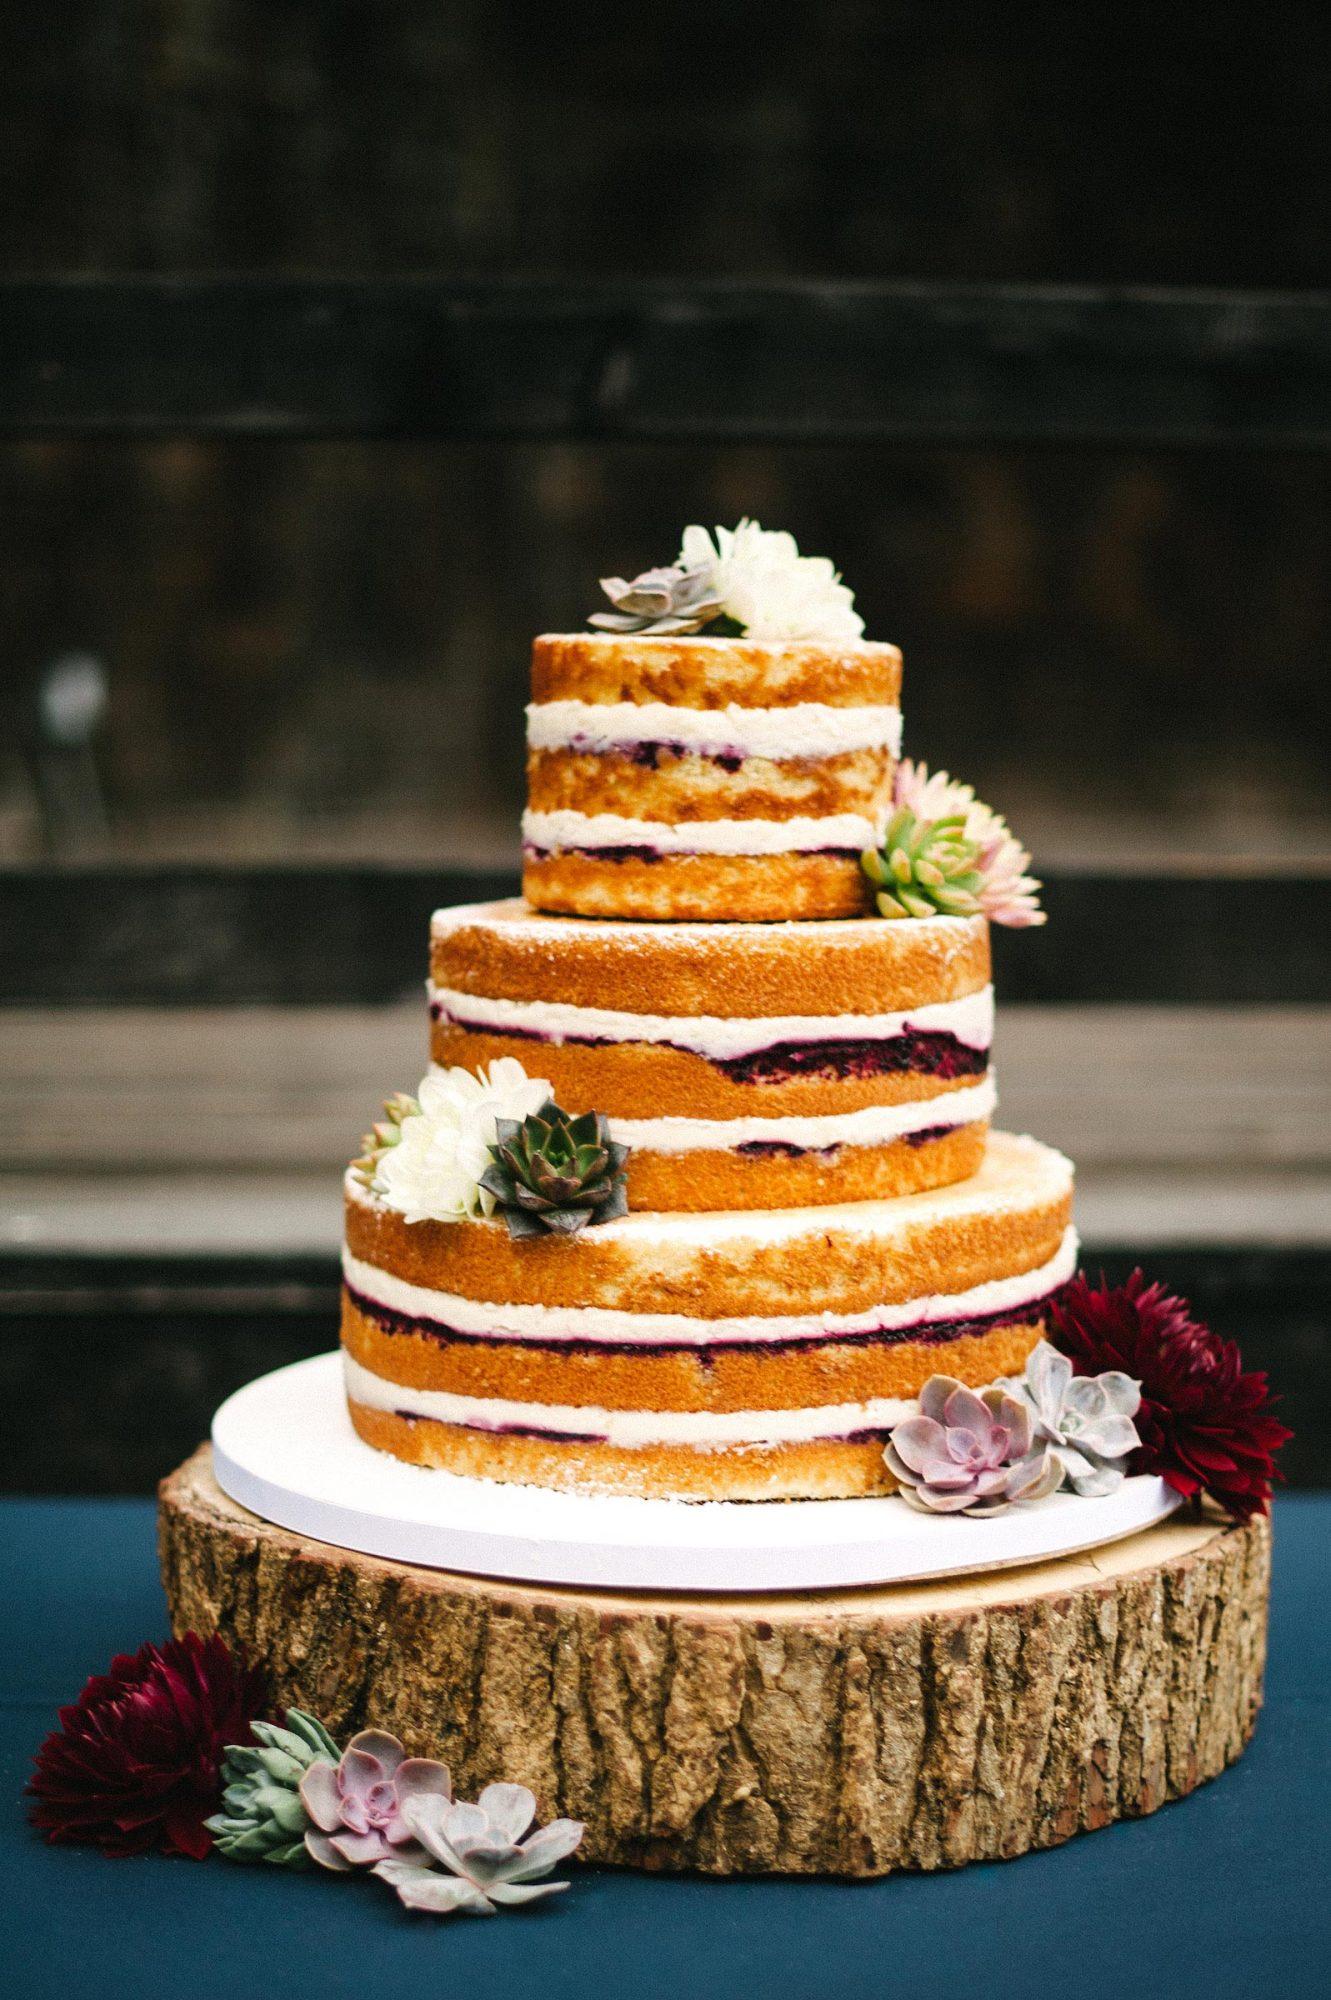 Smilf star Frankie Shaw's raspberry-and-cream-filled naked wedding cake (complete with a gluten-free top tier!) was decked out in succulents. Fleur de Lisa made the dessert.